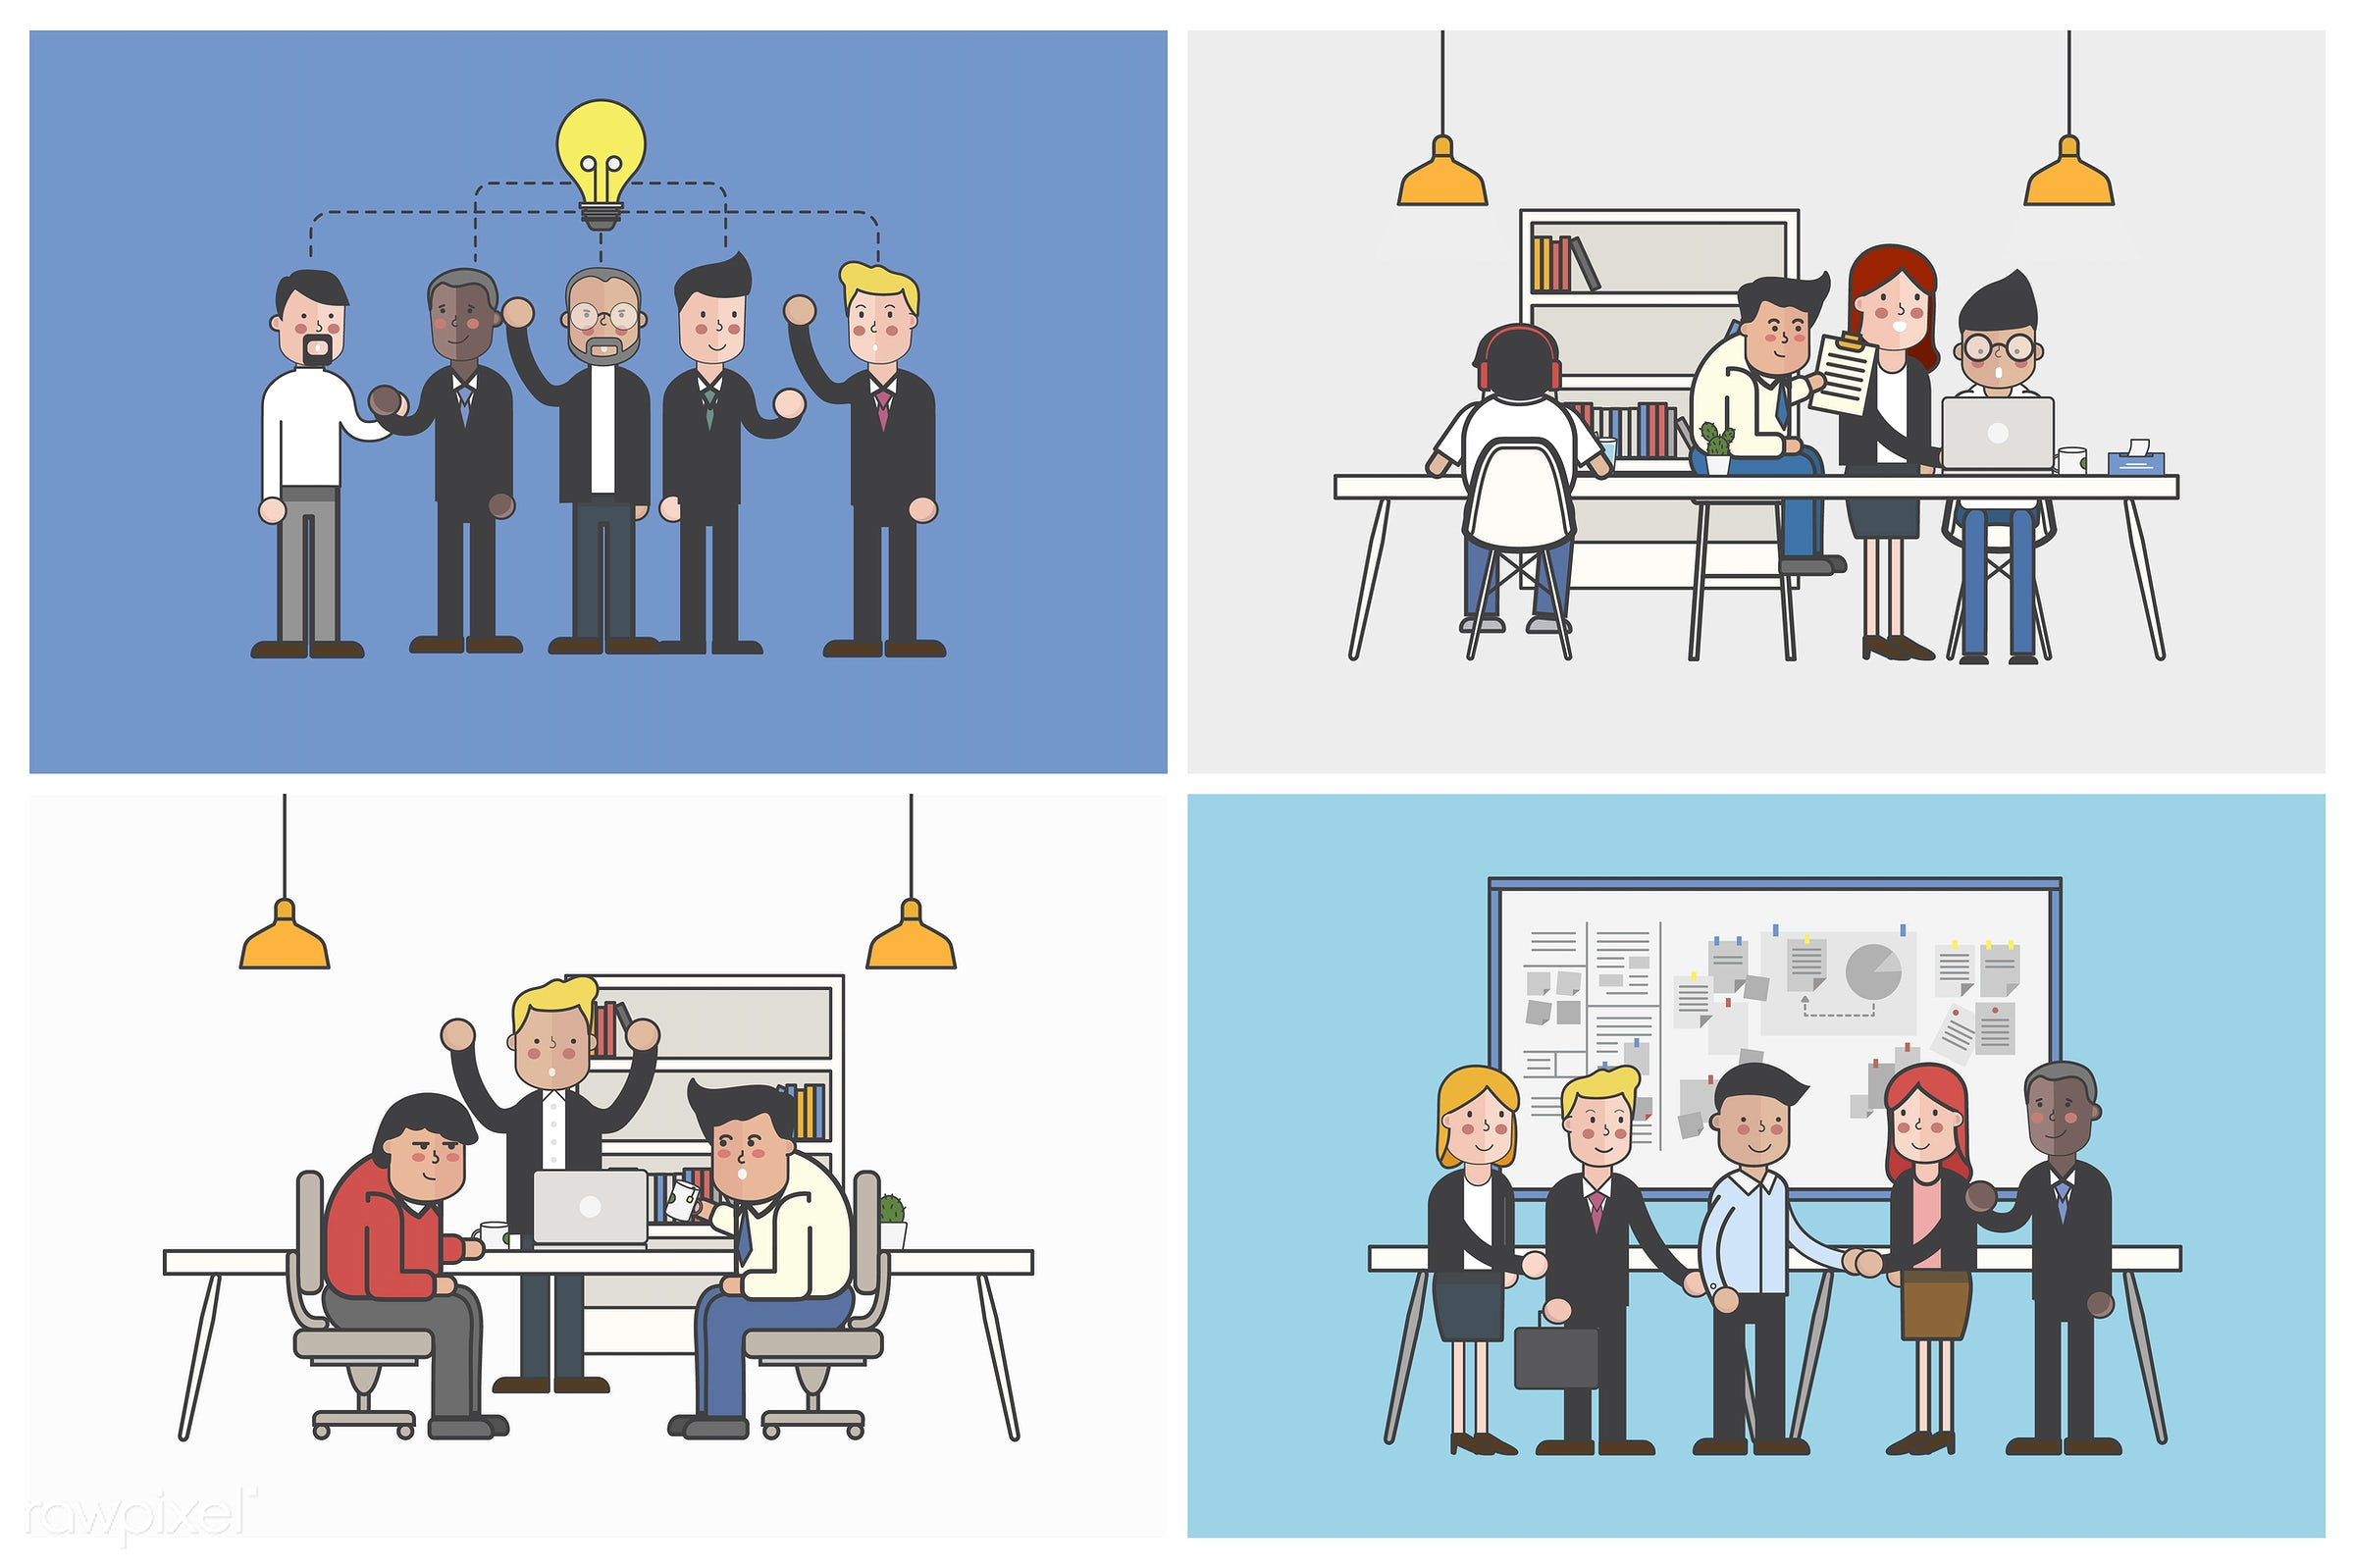 Collection of illustrated office workers in various daily situations - office, business, meeting, analysis, artwork, avatar...